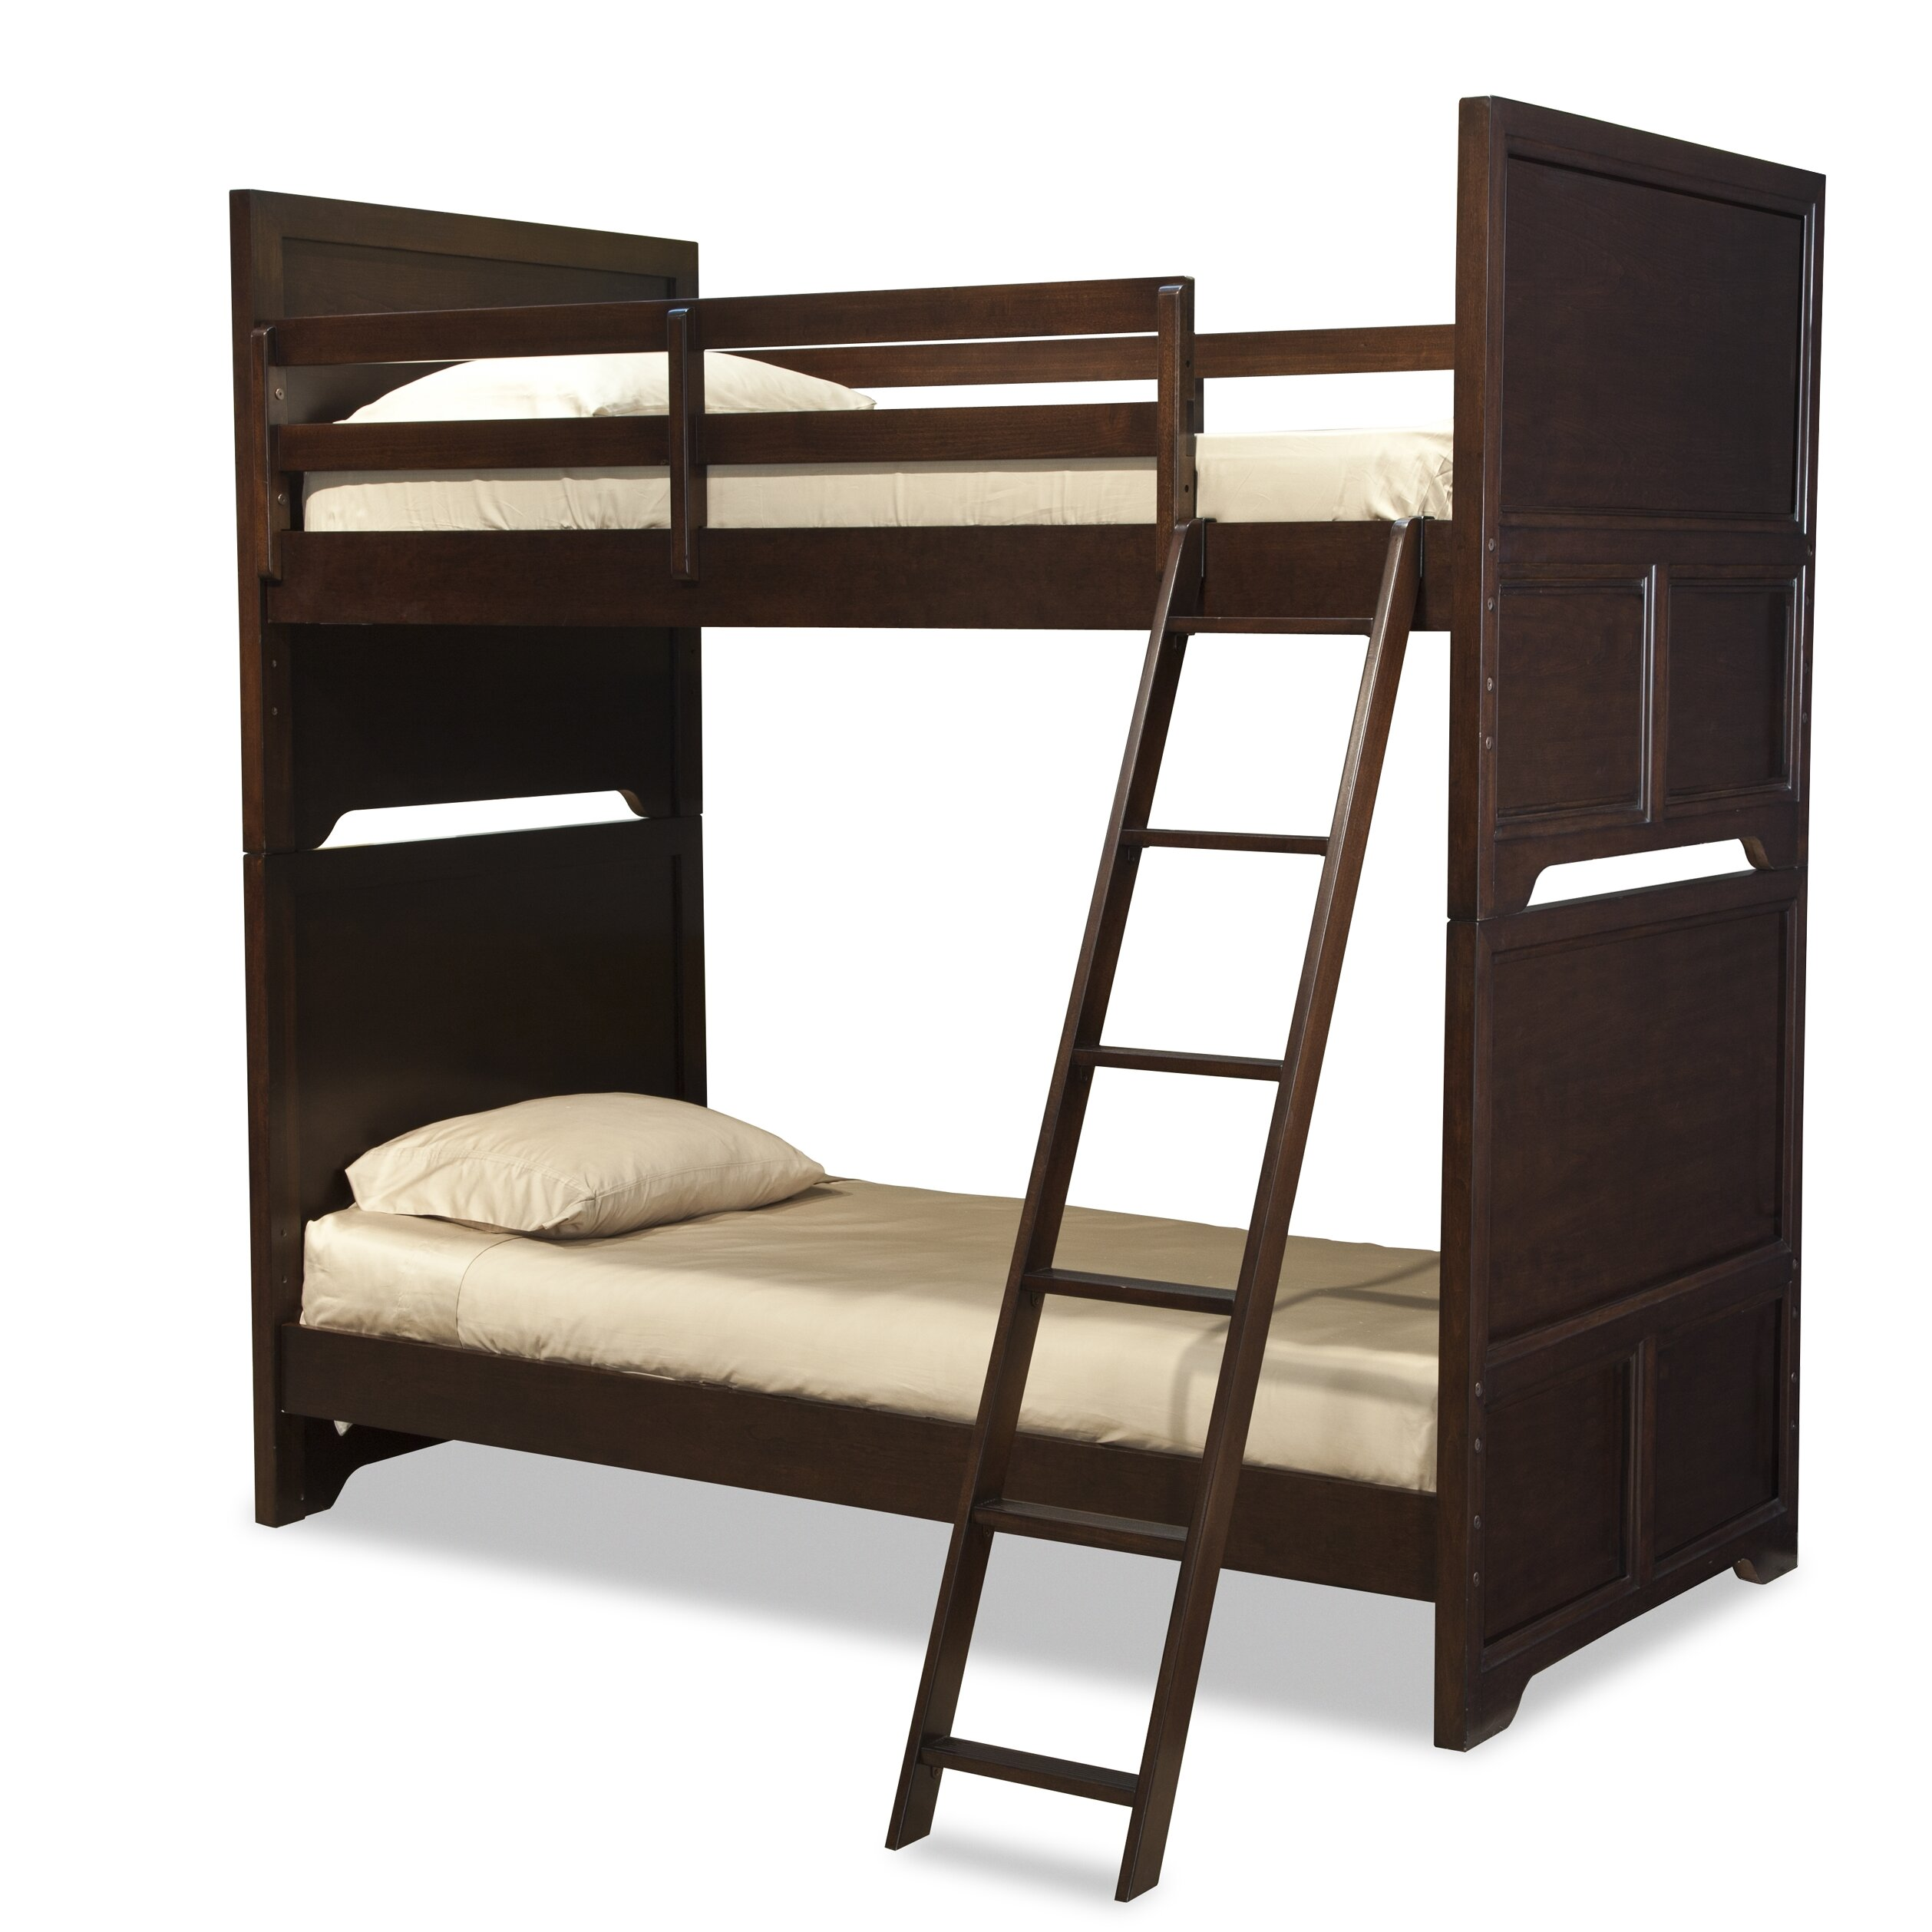 Lc kids benchmark twin over twin standard bunk bed with underbed storage drawer wayfair - Kids twin beds with storage drawers ...